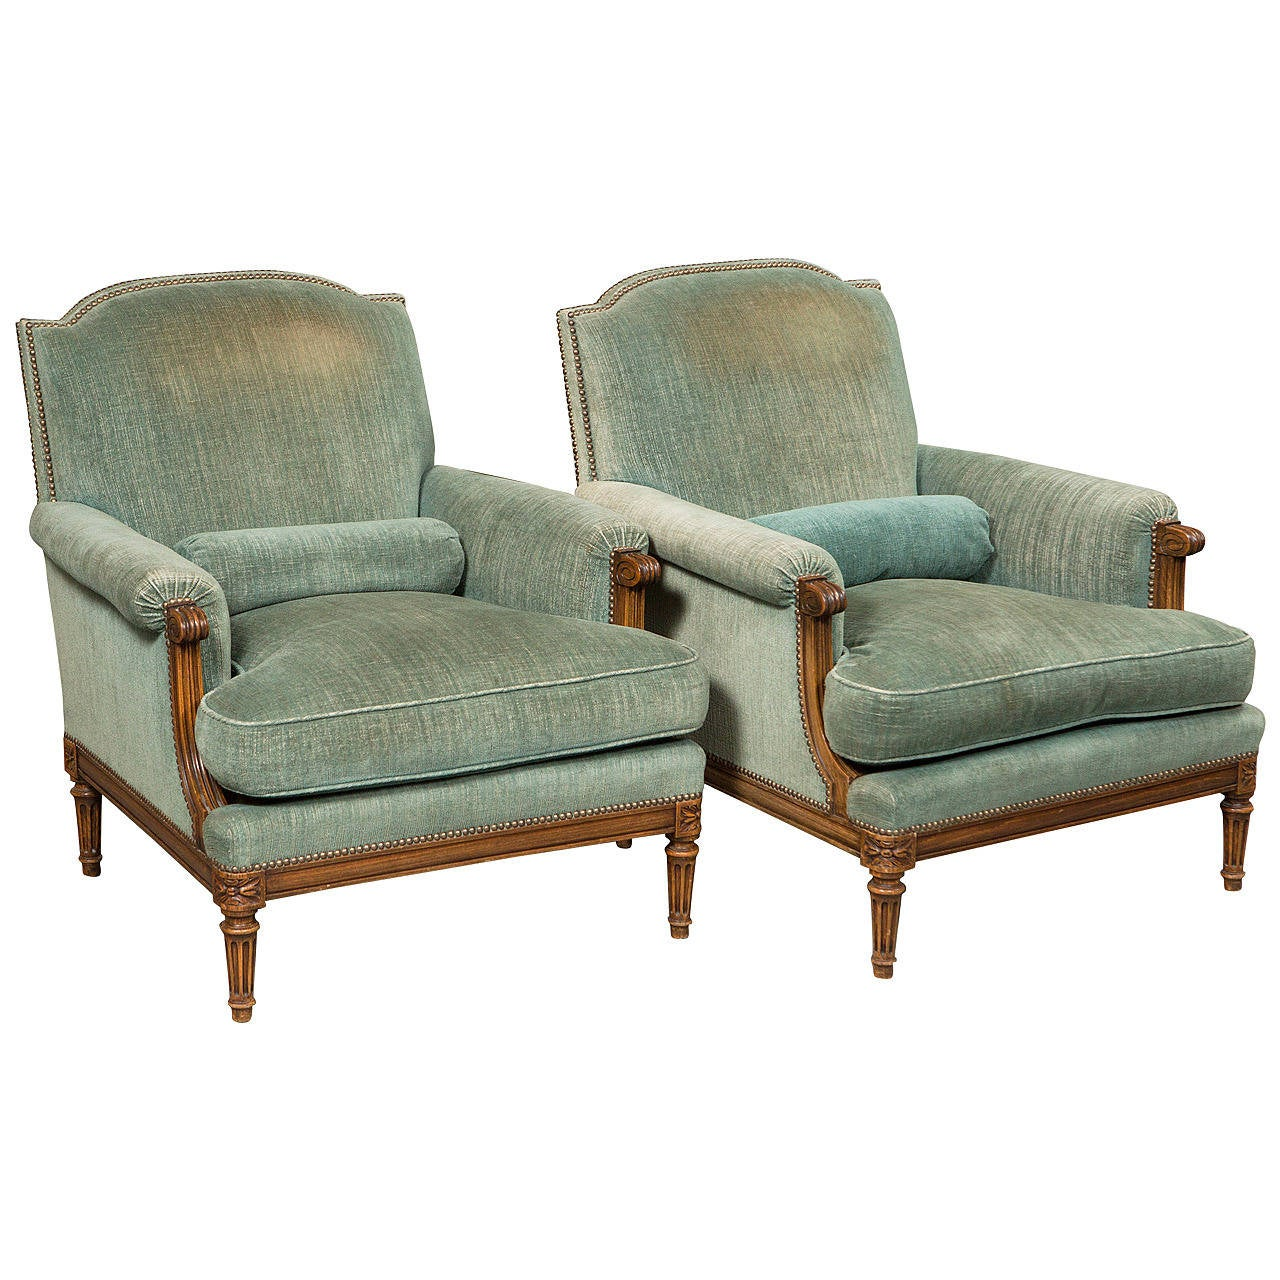 Pair of Louis XVI Style Bergeres 1